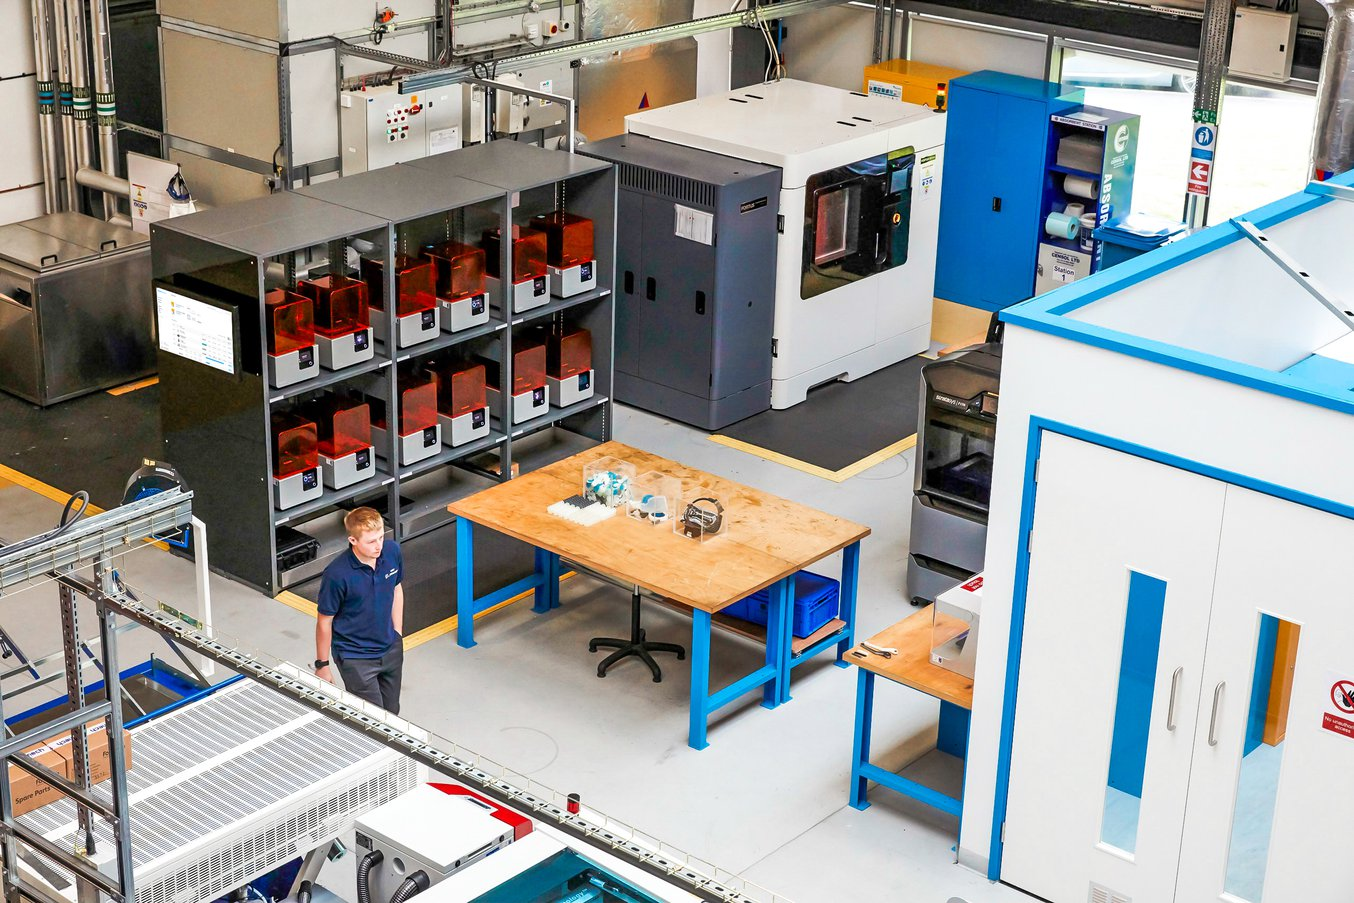 The University of Sheffield Advanced Manufacturing Research Centre (AMRC) uses a fleet of 12 SLA 3D printers for most engineering and manufacturing applications and reserve five industrial FDM printers for larger parts.